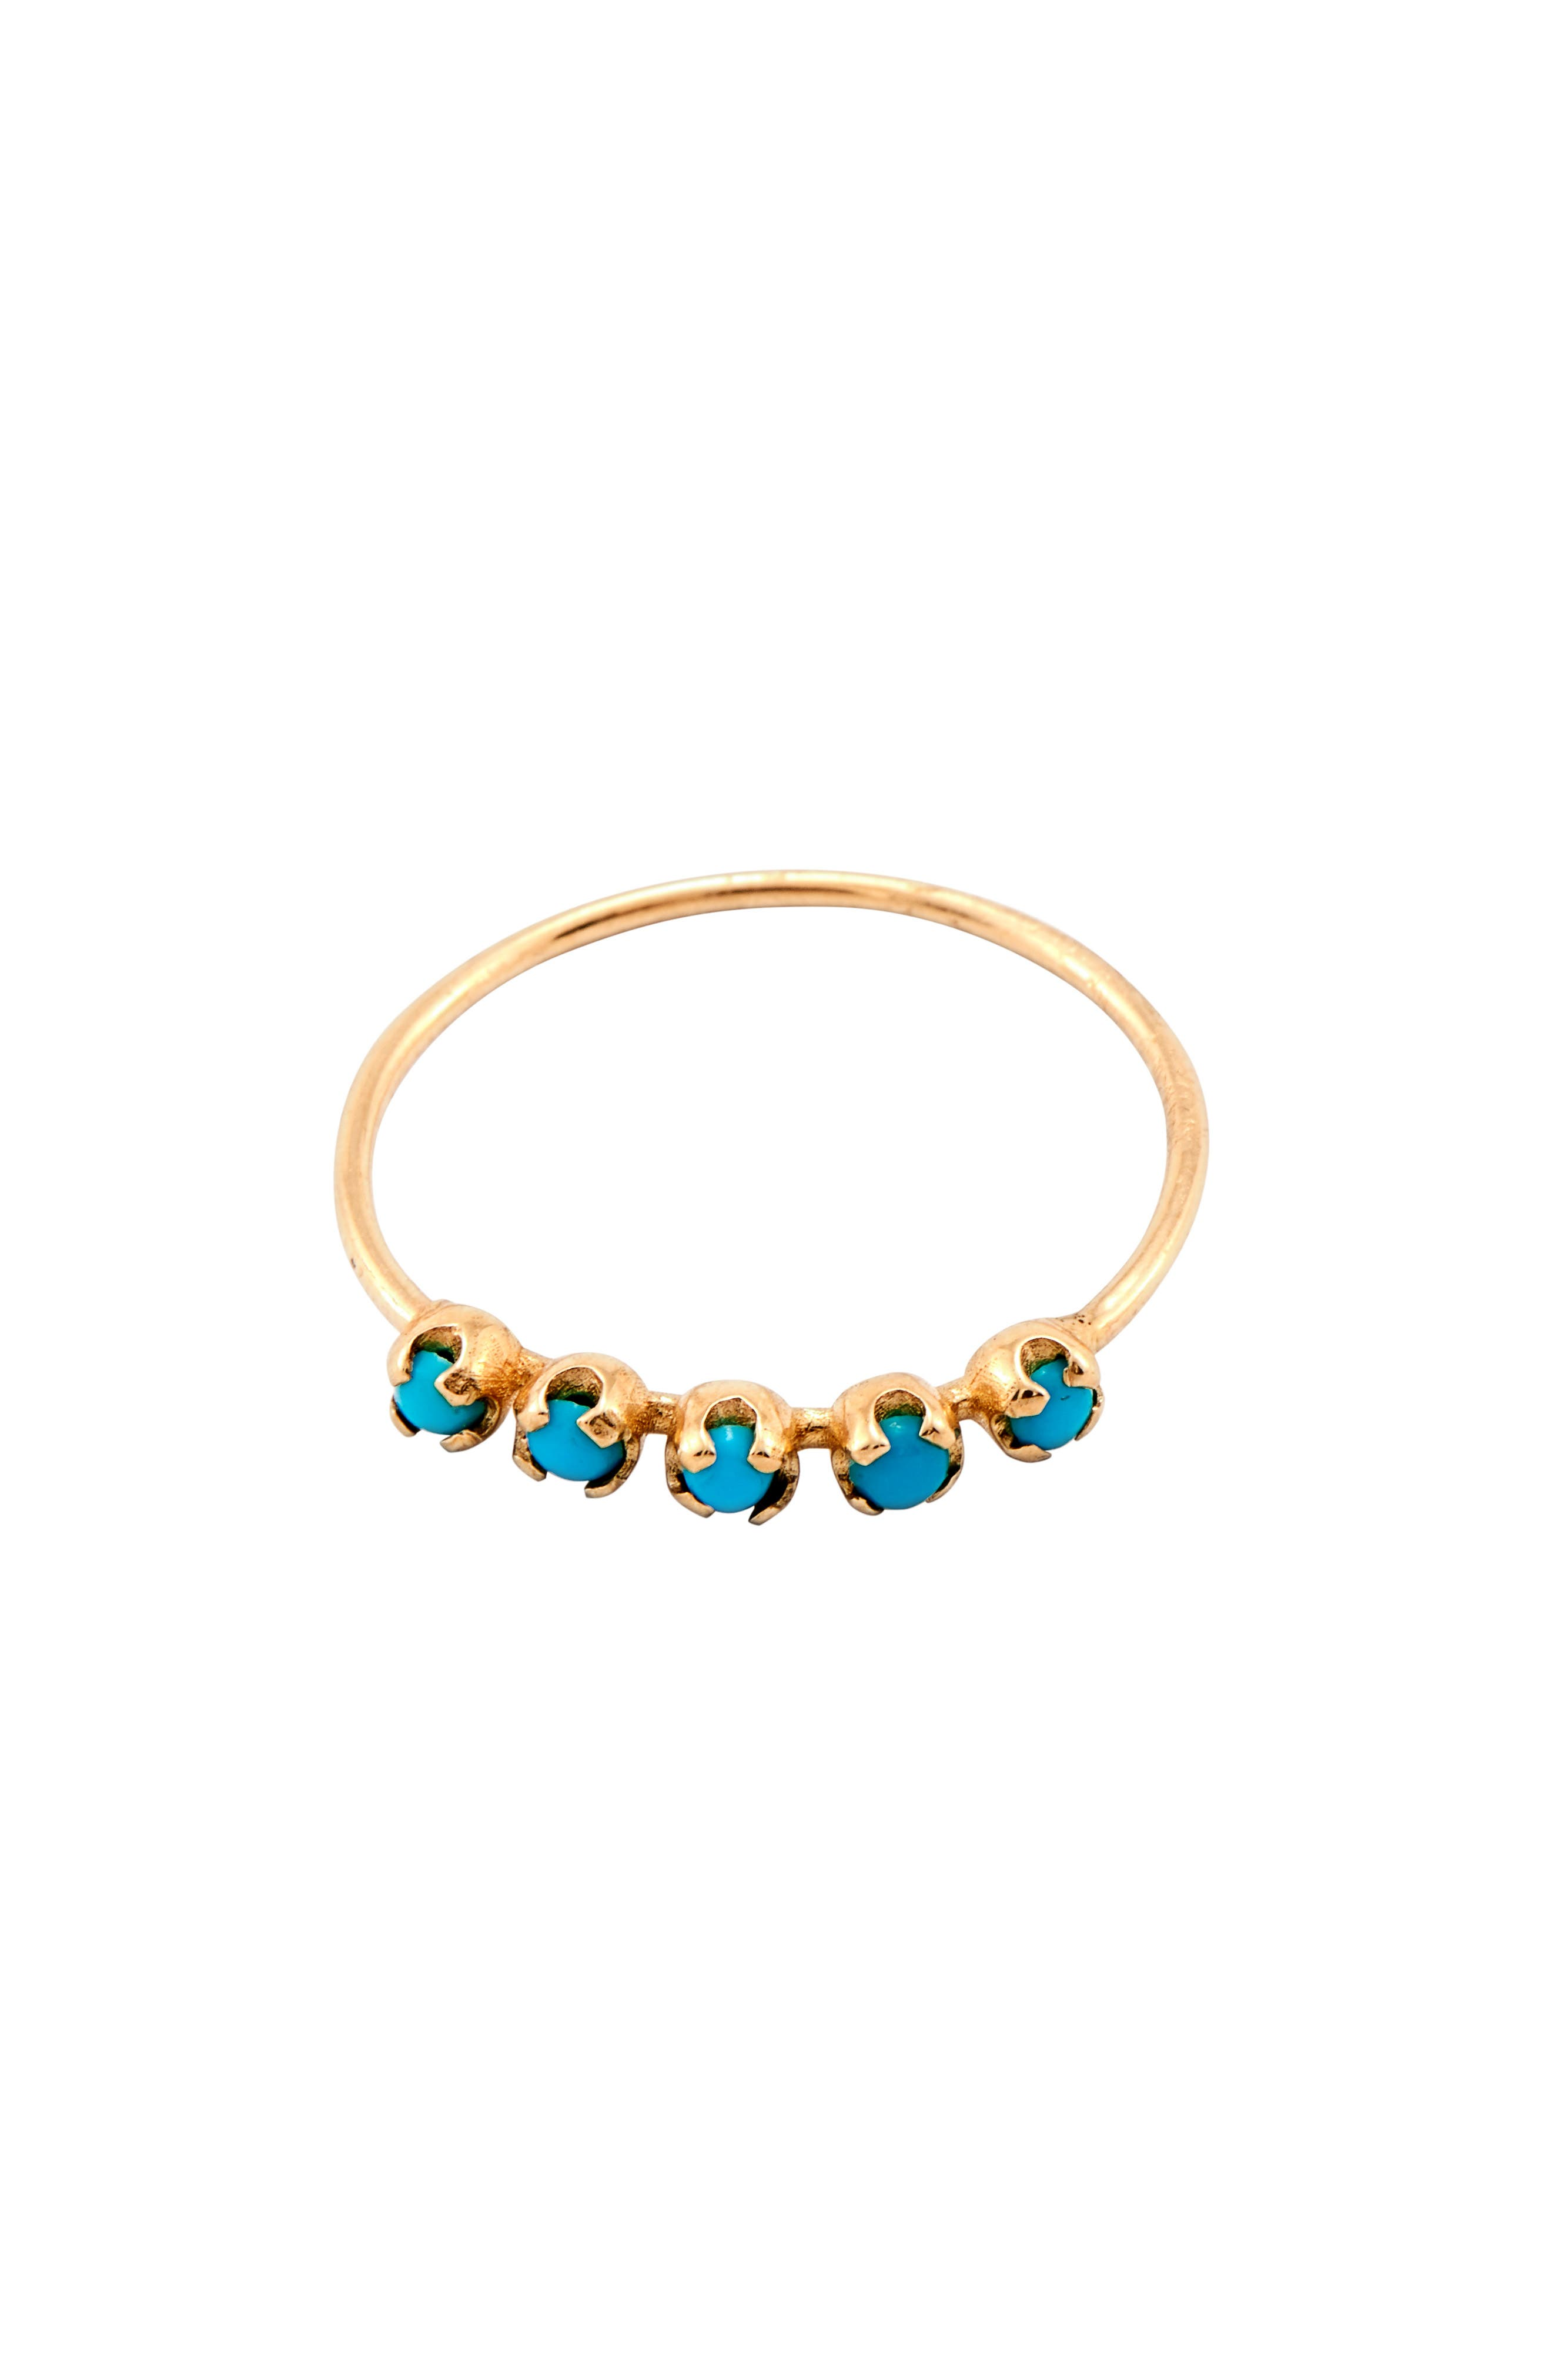 LOREN STEWART Turquoise Cinq Ring, Main, color, GOLD/ TURQUOISE